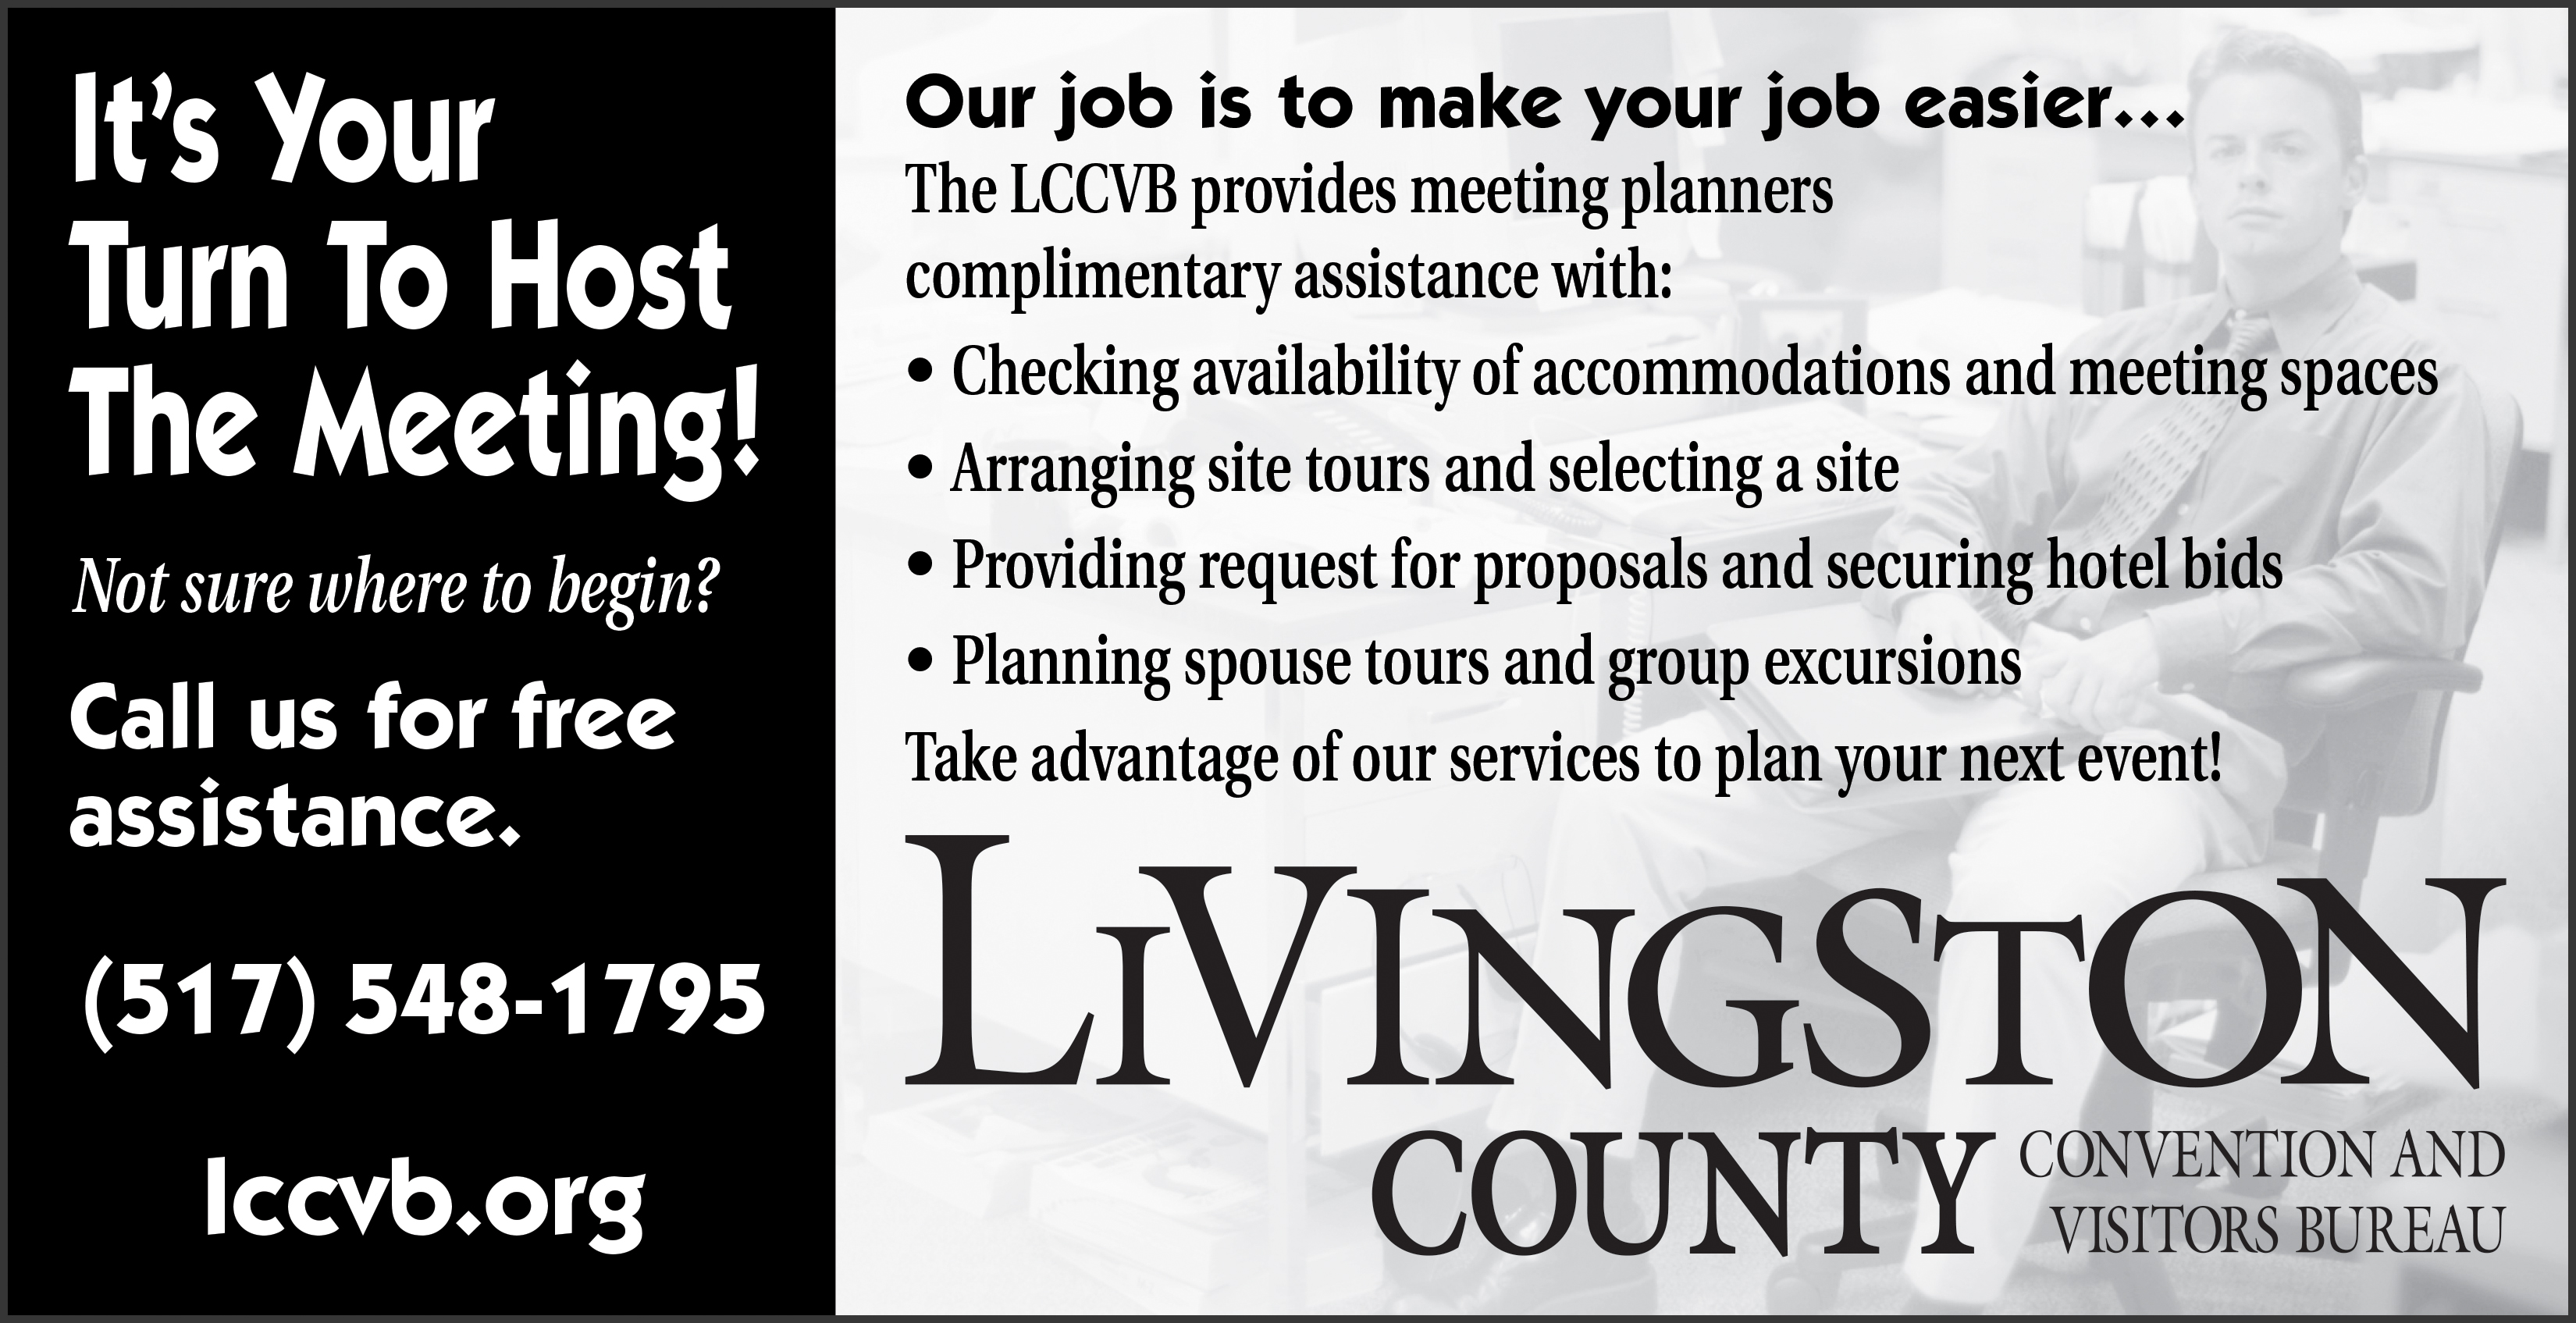 Livingston County Convention And Visitors Bureau